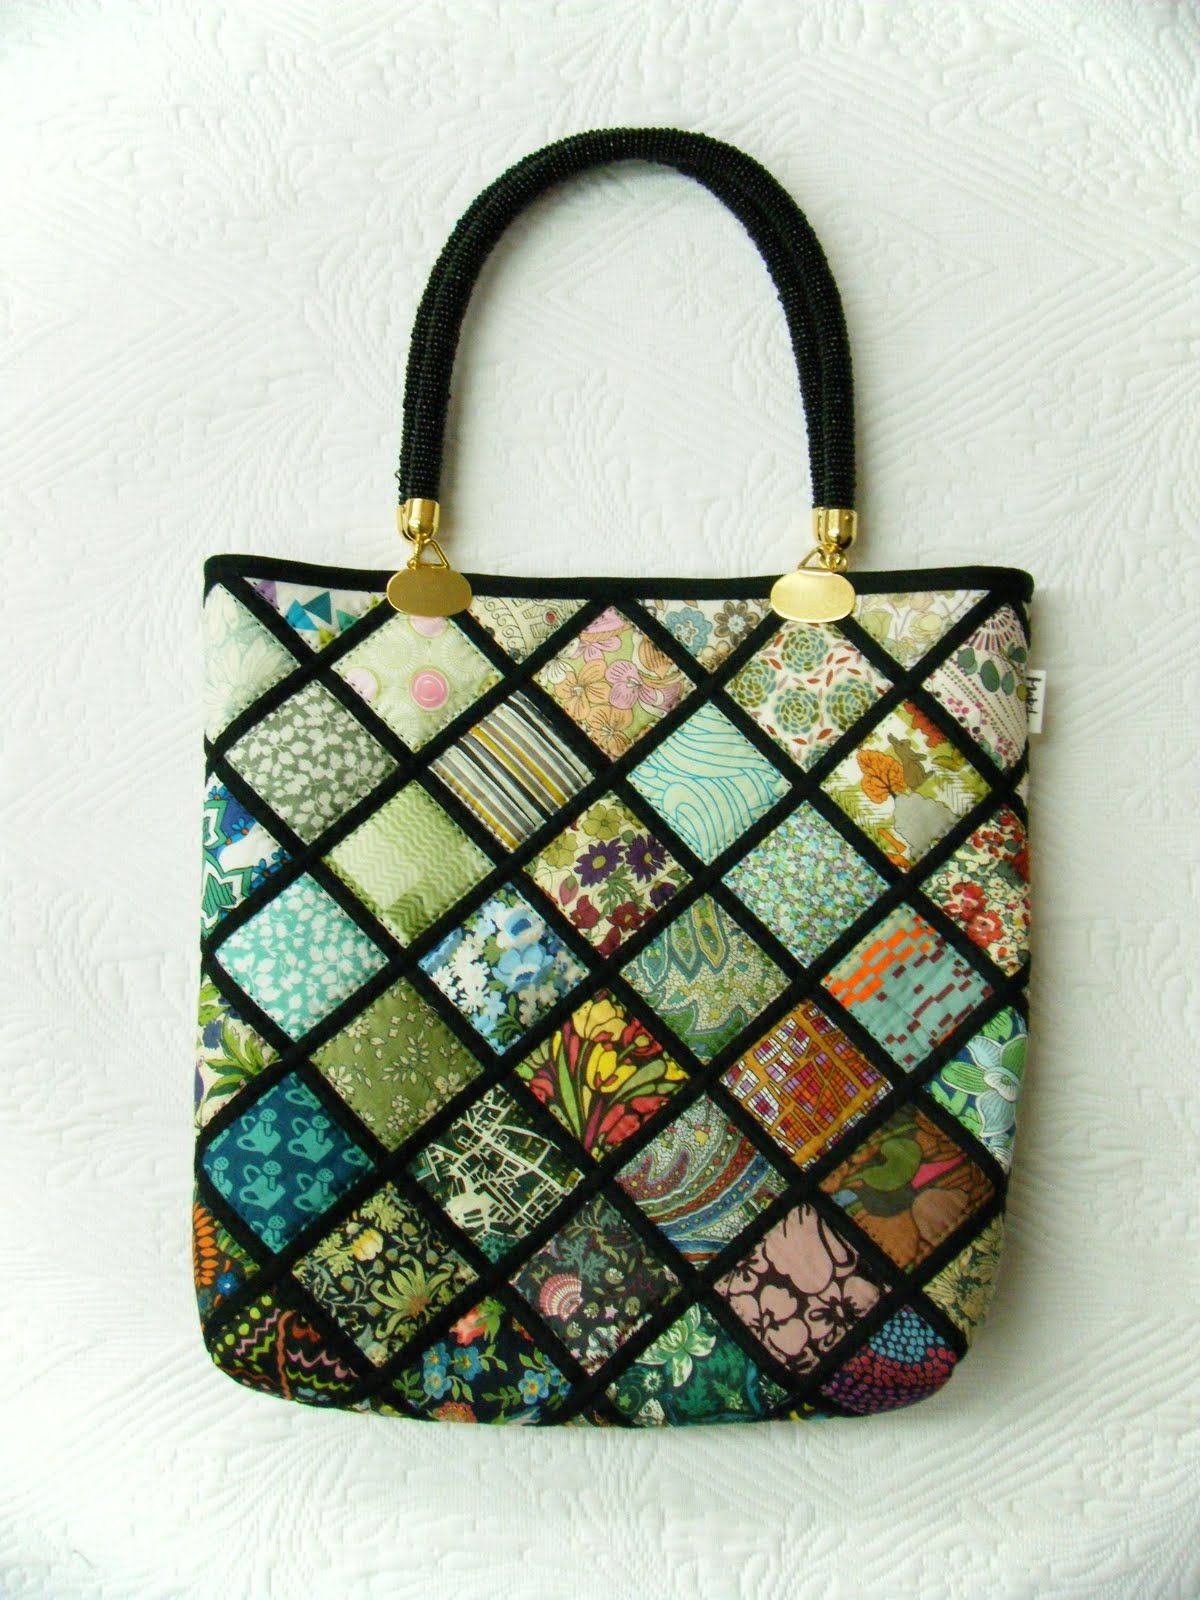 quilted bag patterns | ... Mariko Japan: New bags: Mariko's new ... : quilted bags and totes patterns - Adamdwight.com